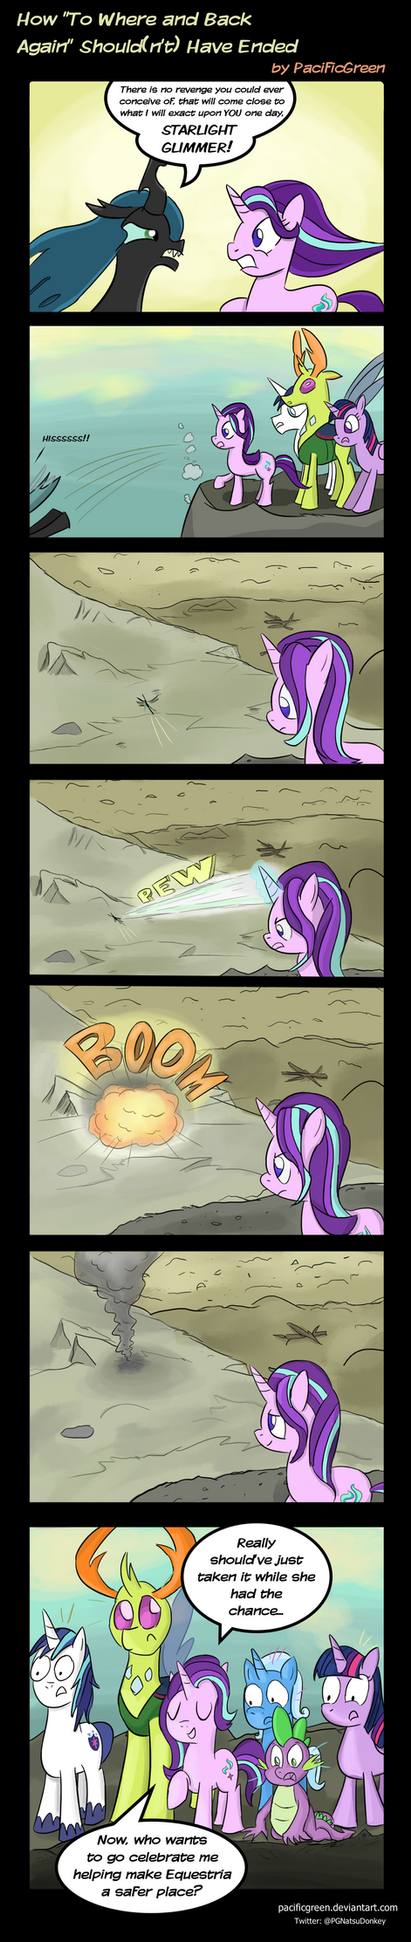 Mlp Comic Trixie S Revenge Dog